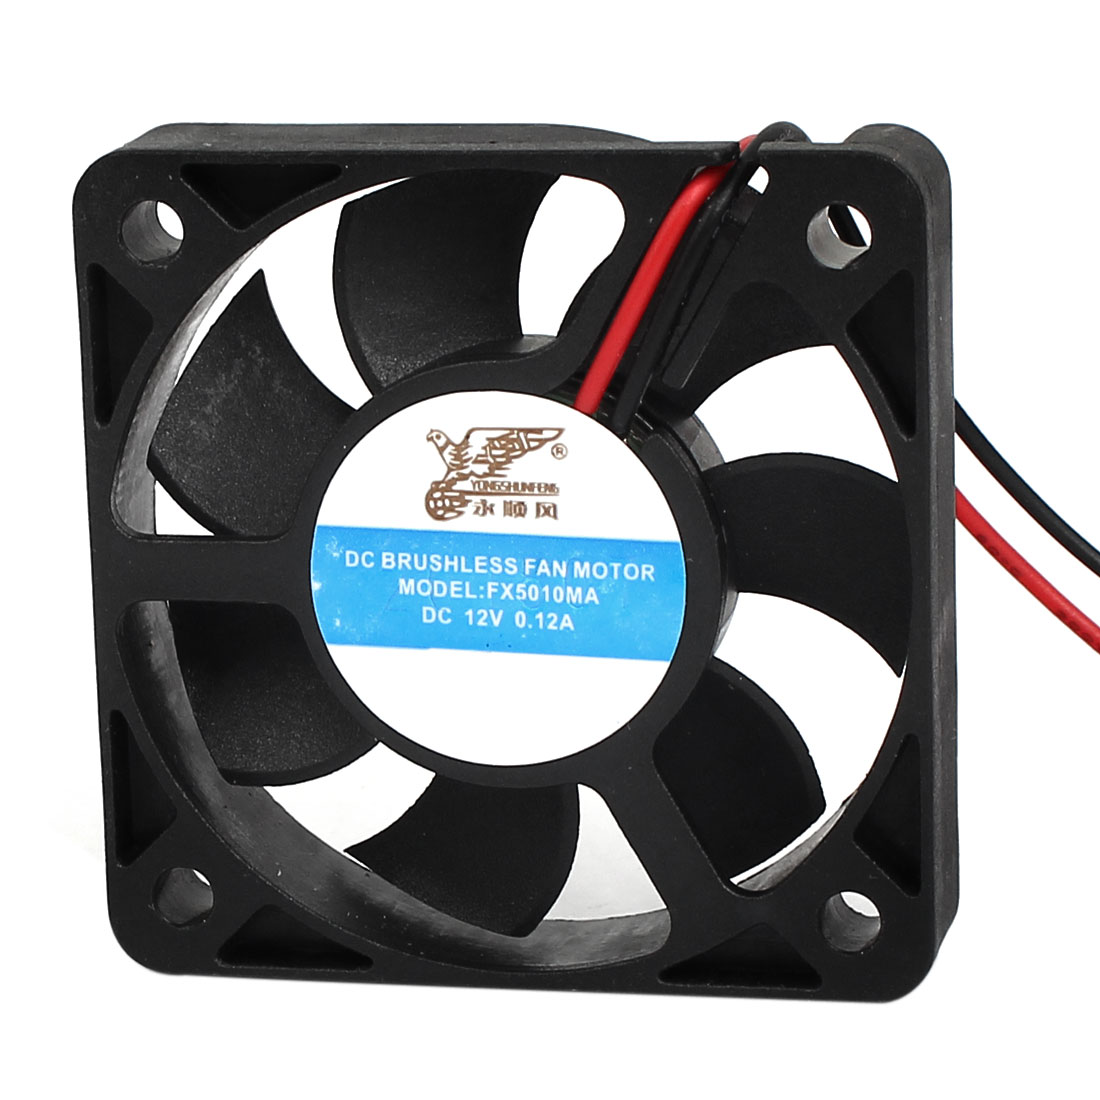 DC 12V 0.12A 2-Wired Square Plastic Frame 7 Cutters CPU Cooling Fan Cooler 50x50x10mm